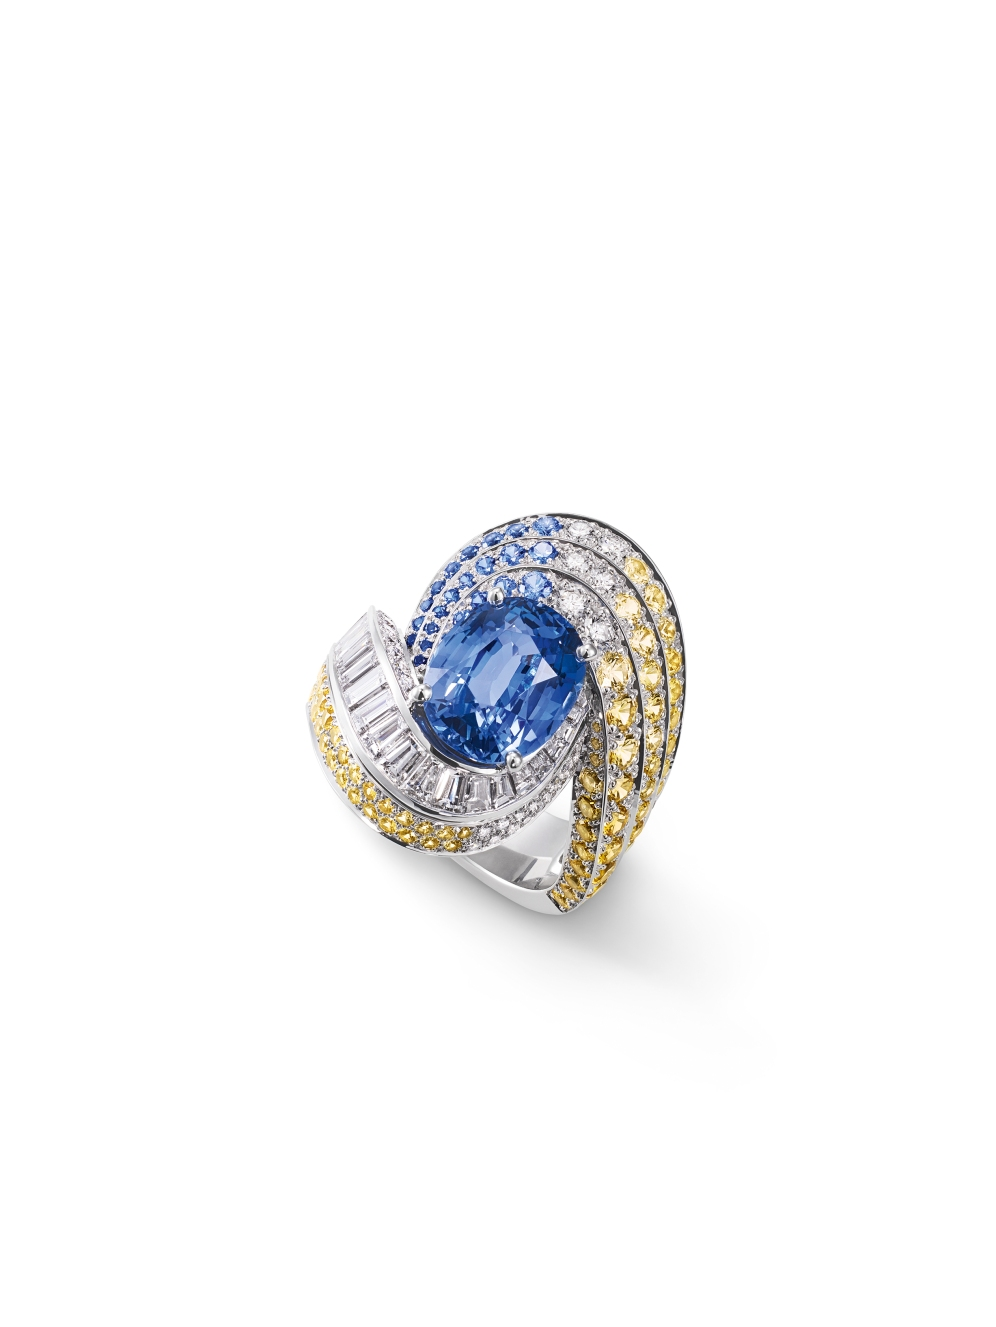 Ring in white gold, set with brilliant-cut, square-cut and baguette-cut diamonds, round blue and yellow sapphires and an oval-cut sapphire from Madagascar of 5.10 carats.